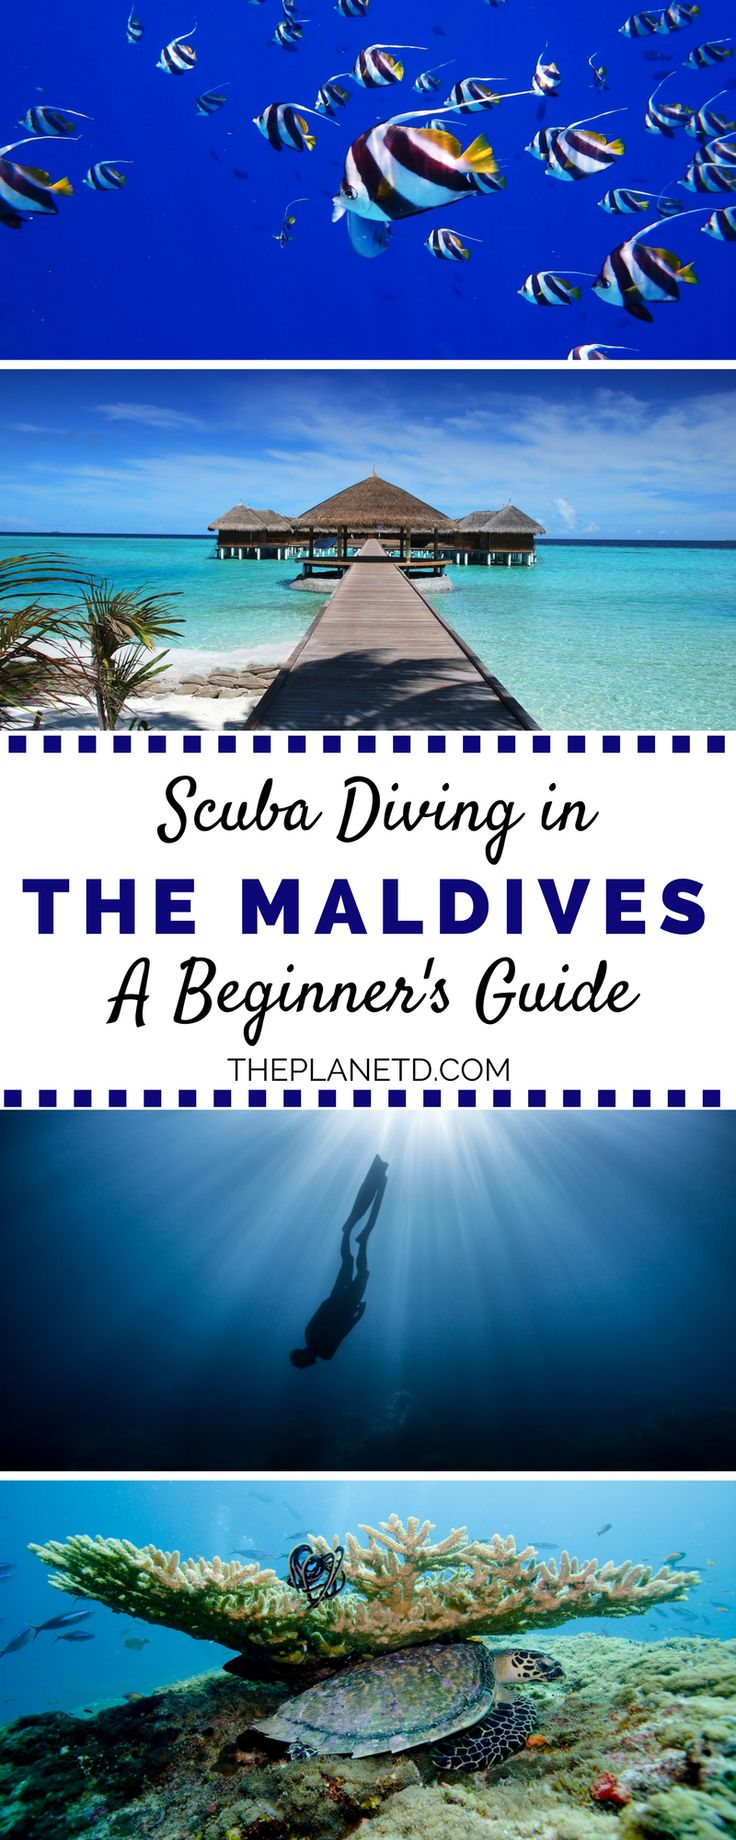 The Maldives is an island destinations that is well know for its incredible snorkeling and scuba diving experiences. This guide looks at learning to scuba dive in the Maldives as a beginner diver. What to expect, practical tips and common sea life and animals. Adventure travel in the Maldives.  | Blog by the Planet D #Maldives #Scuba